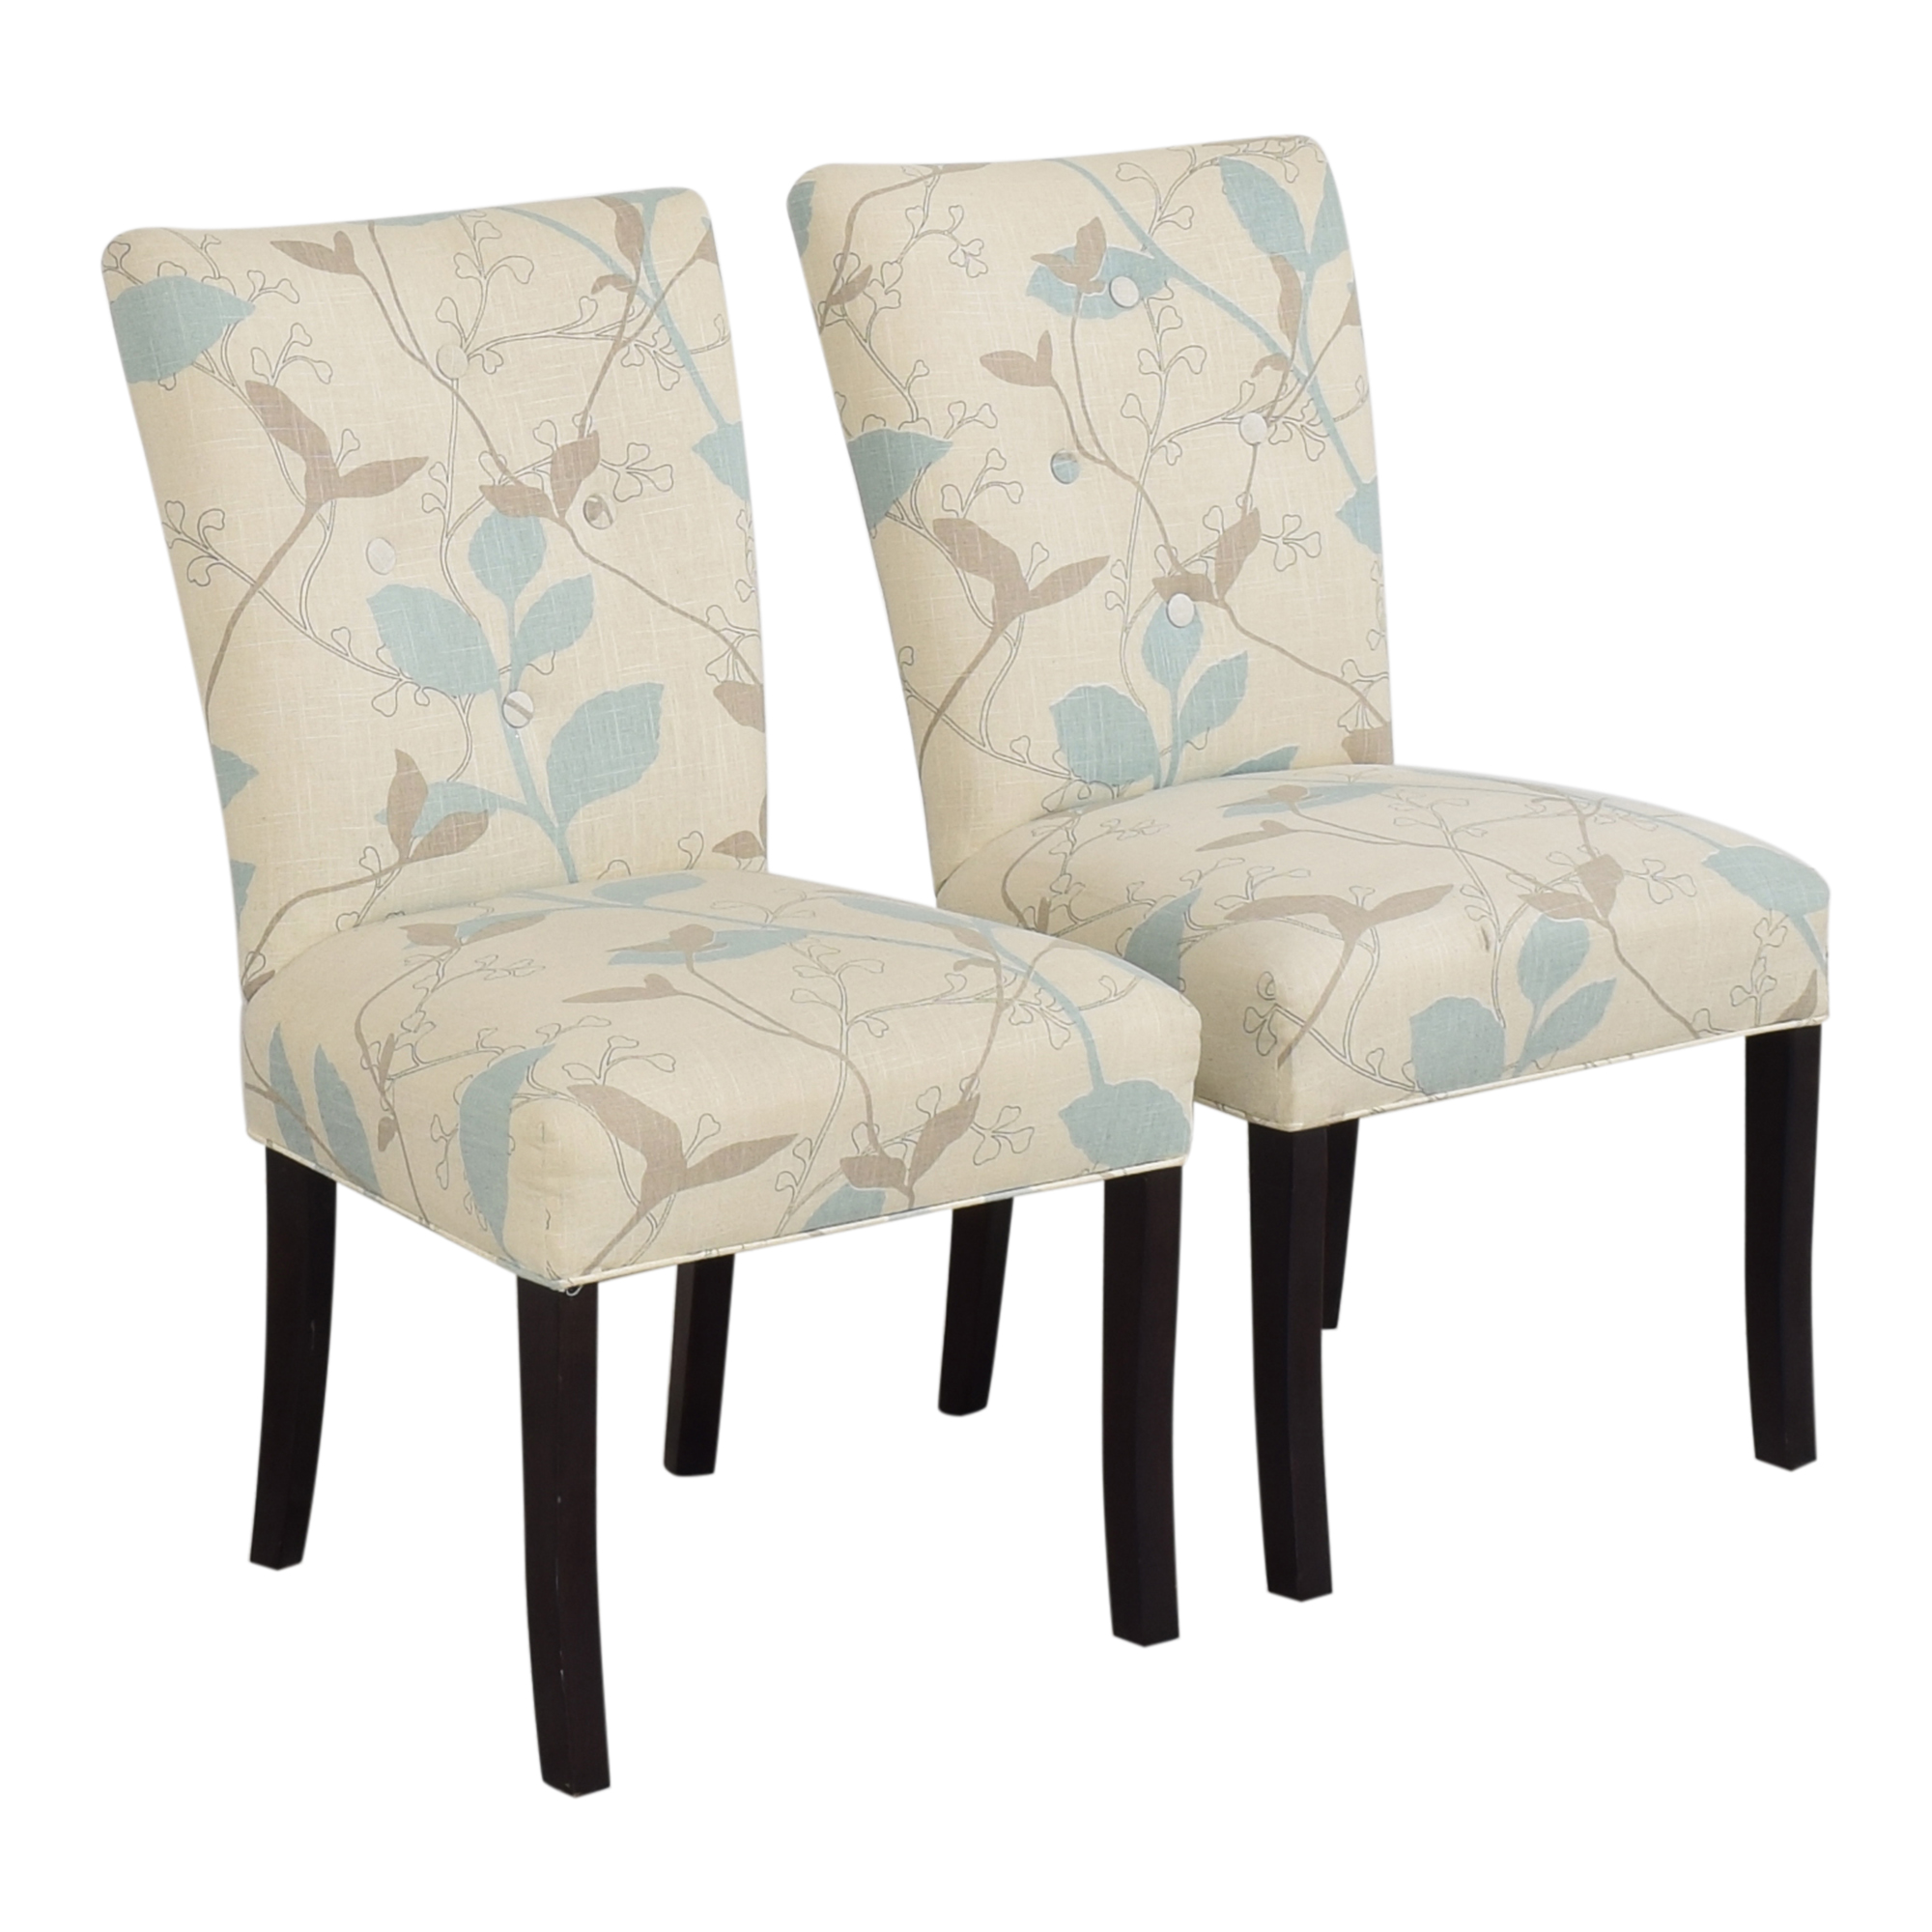 Wayfair Sole Designs Upholstered Dining Chairs / Dining Chairs